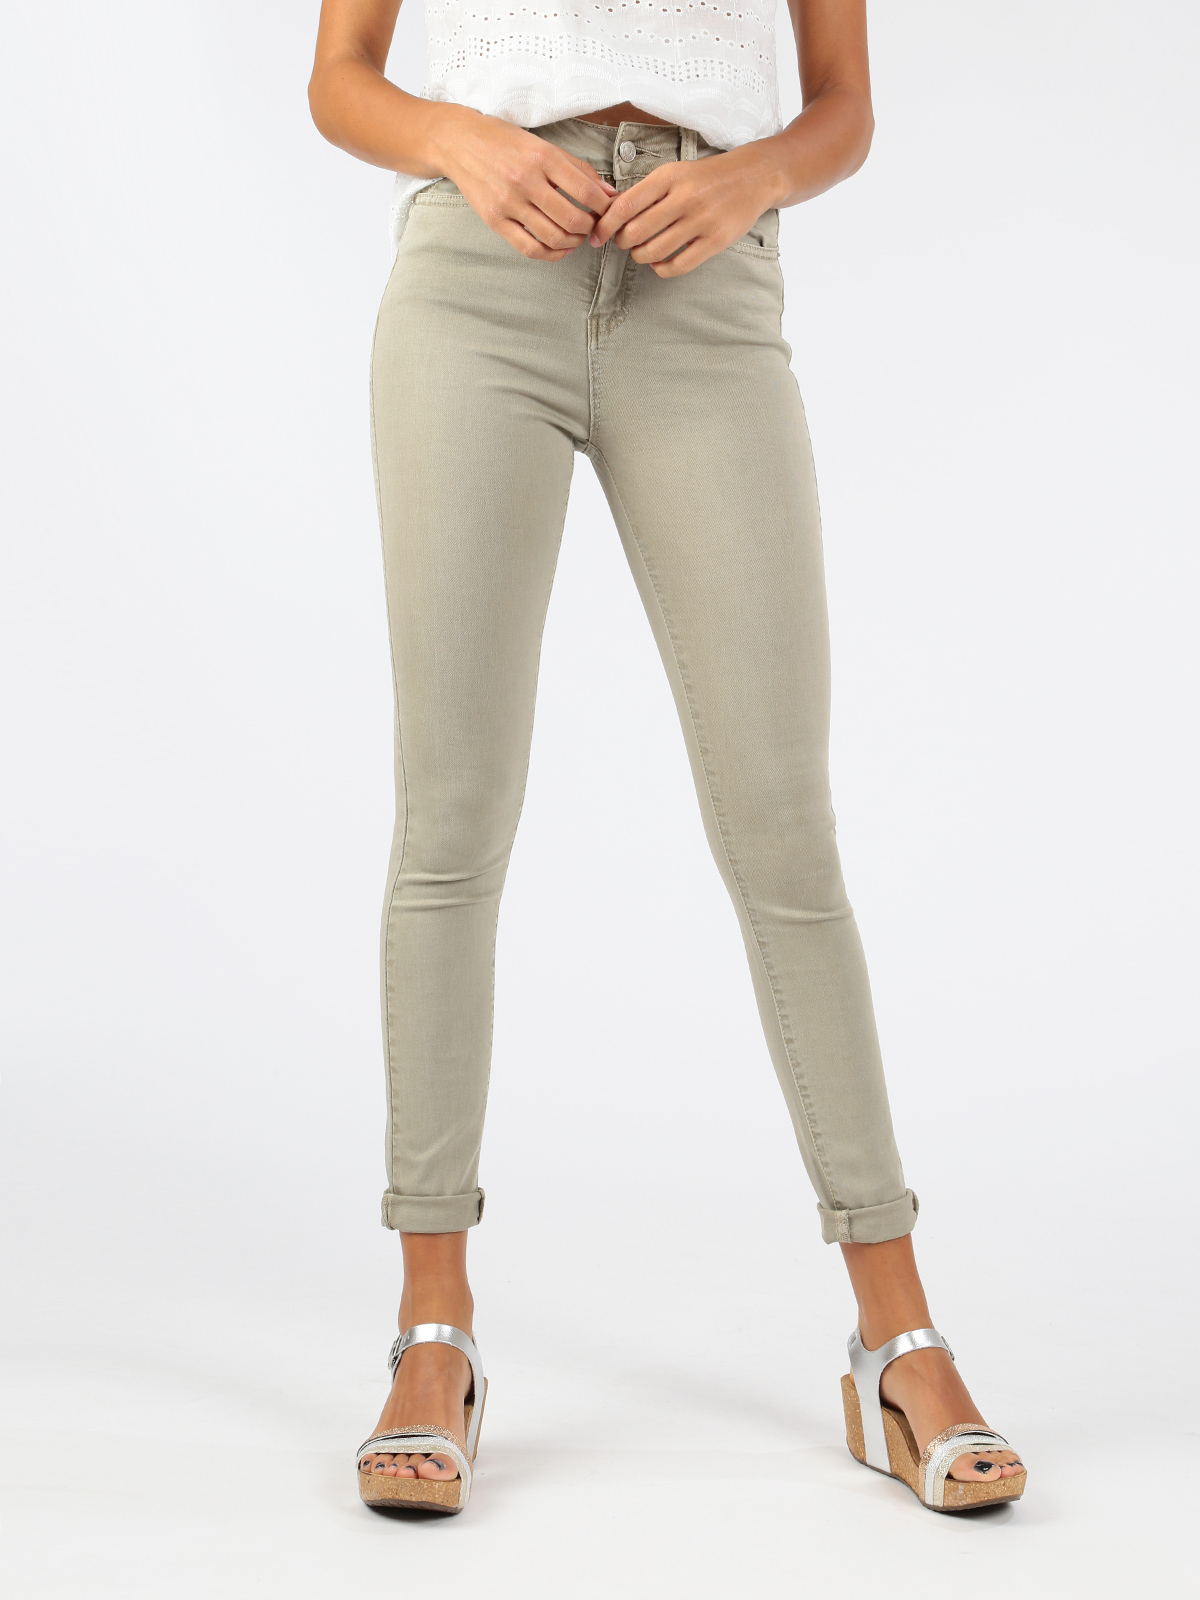 Beige Cotton Pants High-waist